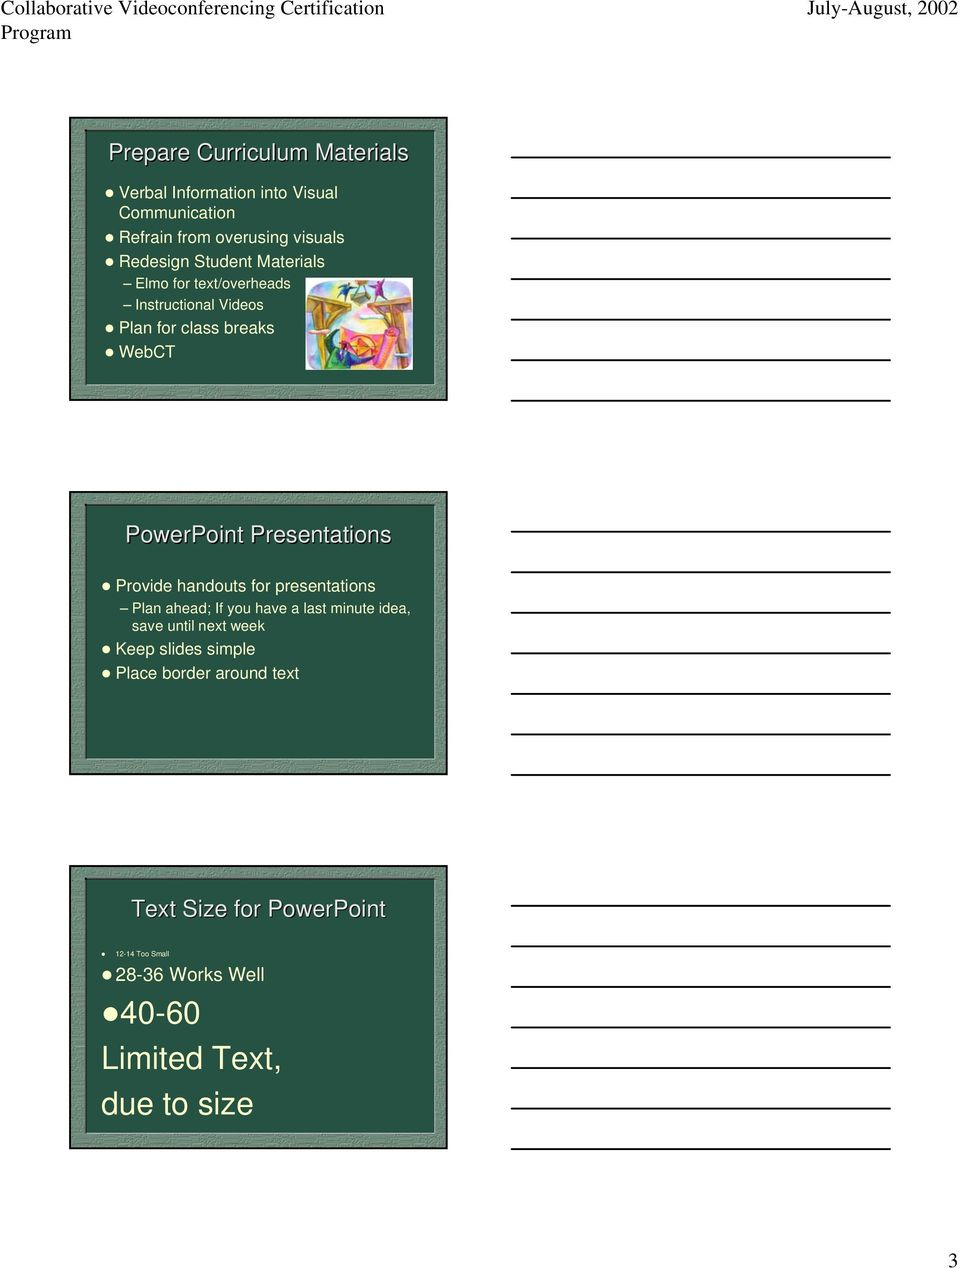 Provide handouts for presentations Plan ahead; If you have a last minute idea, save until next week n Keep slides simple